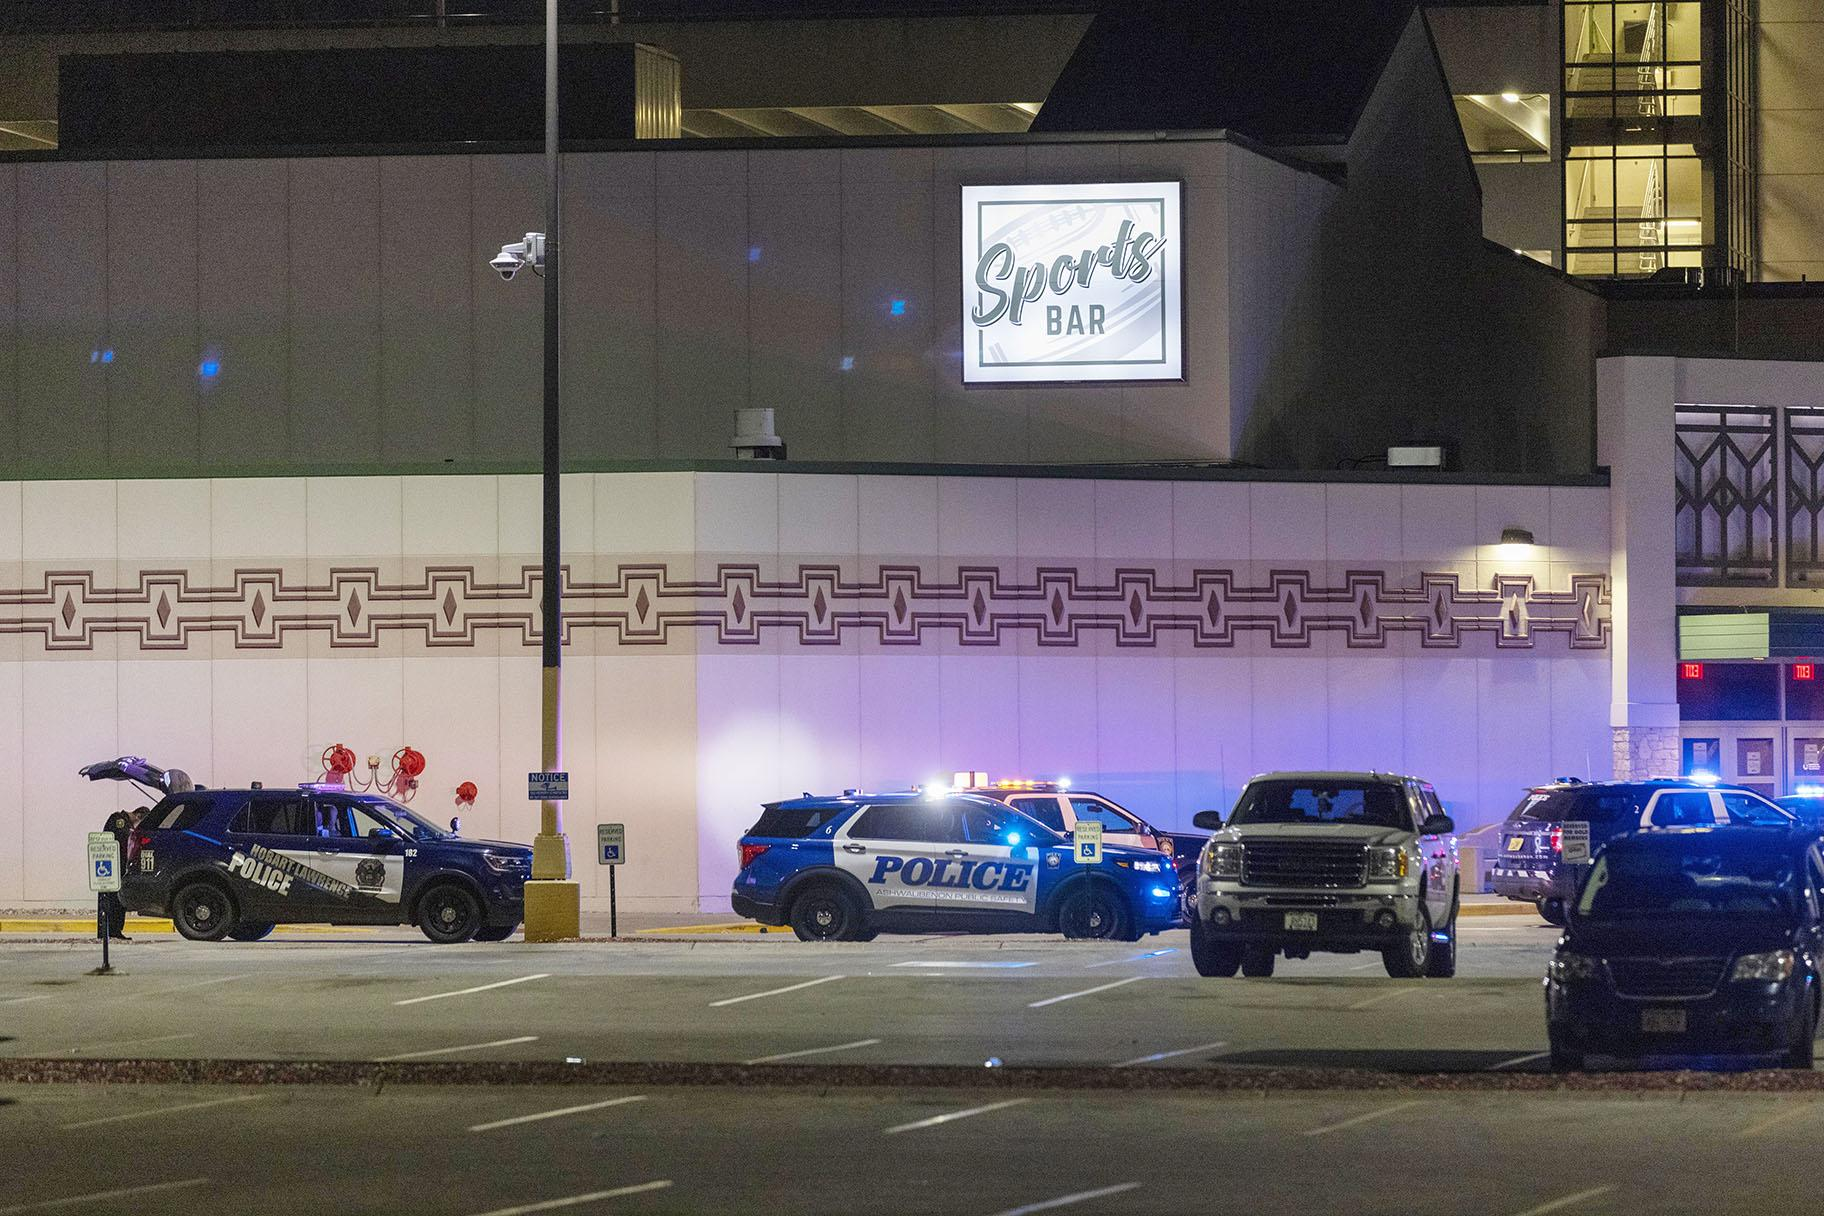 Police line the parking lot outside the Oneida Casino in the early morning hours of Sunday, May 2nd, 2021, near Green Bay, Wisconsin. (AP Photo / Mike Roemer)